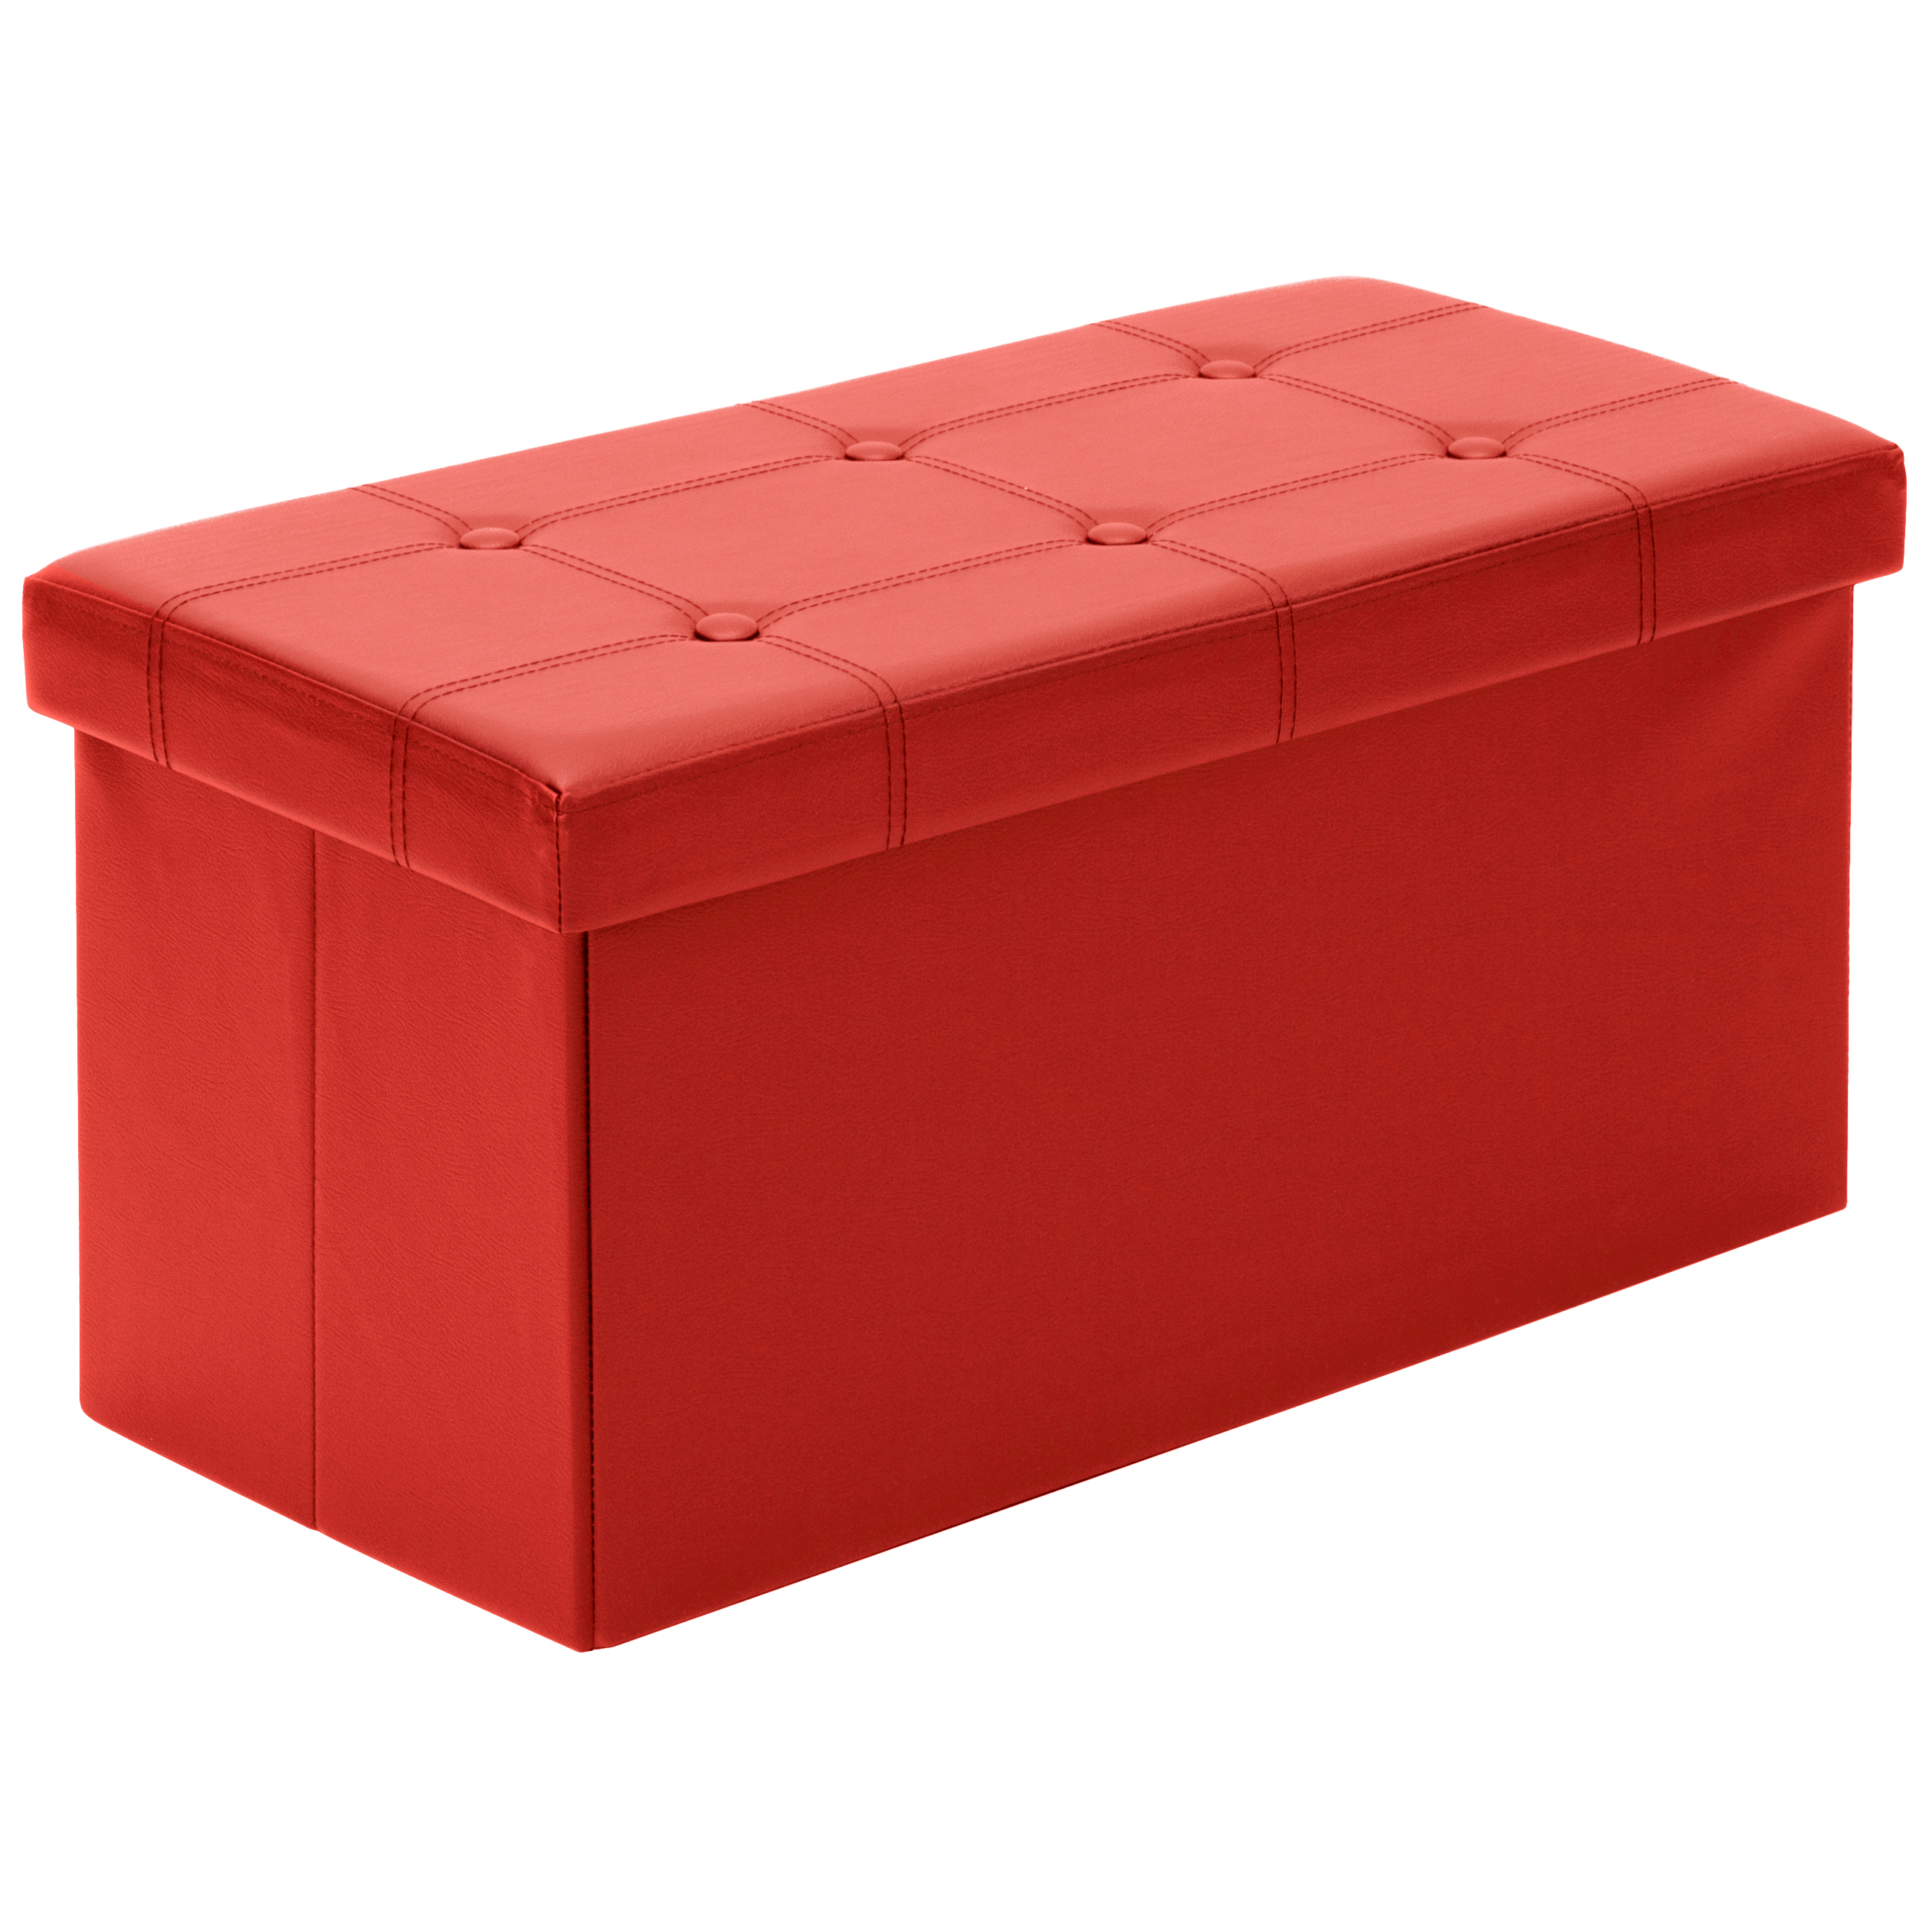 Best Choice Products Home Furniture Folding Storage Ottoman Bench- Red